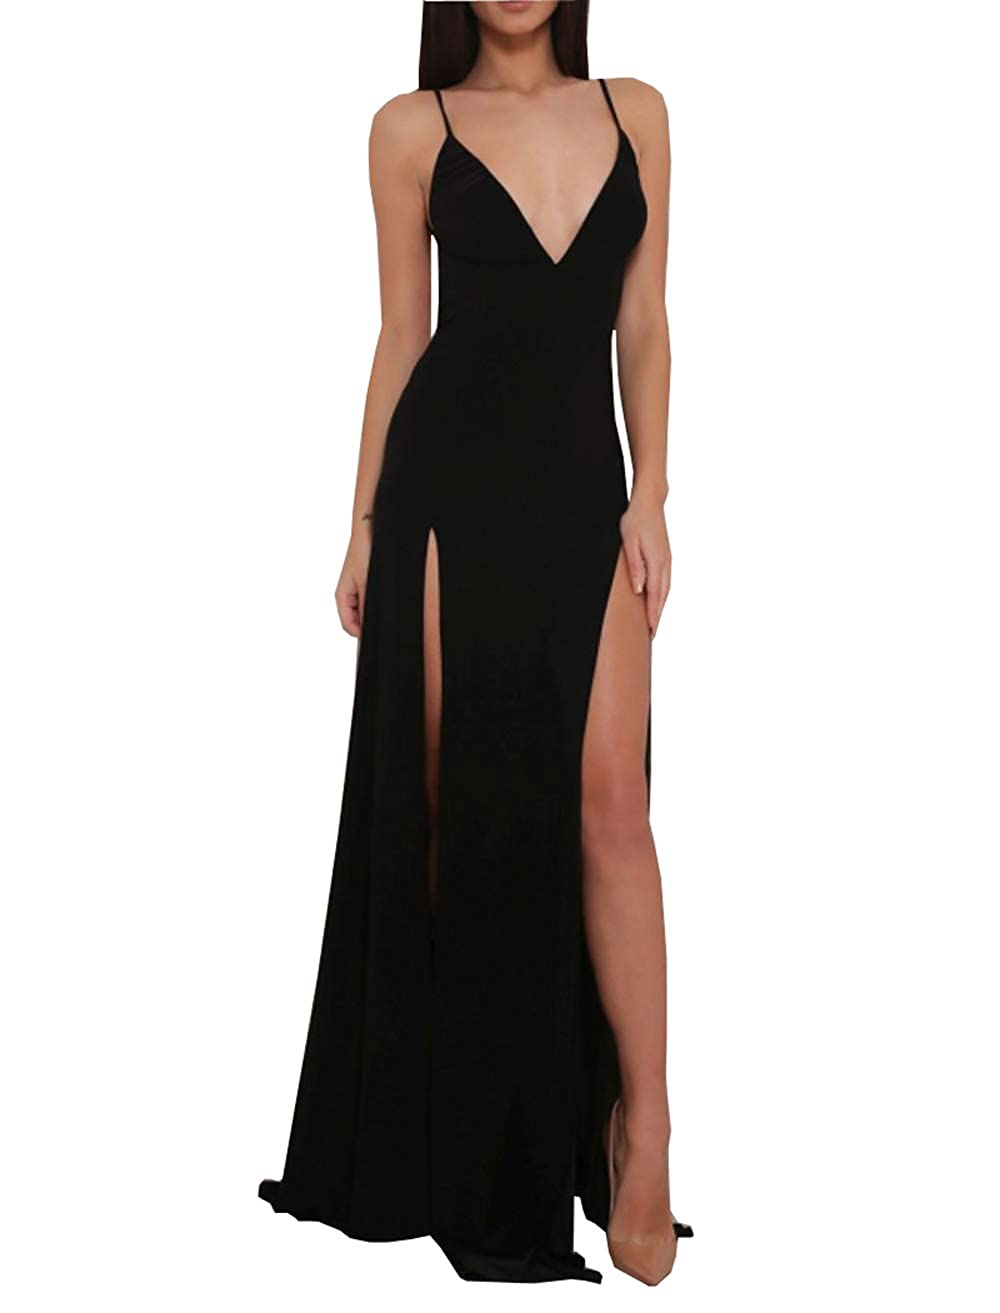 Blacka QiJunGe Women's Party Evening Prom Dress Featuring Side Split Formal Gowns Long